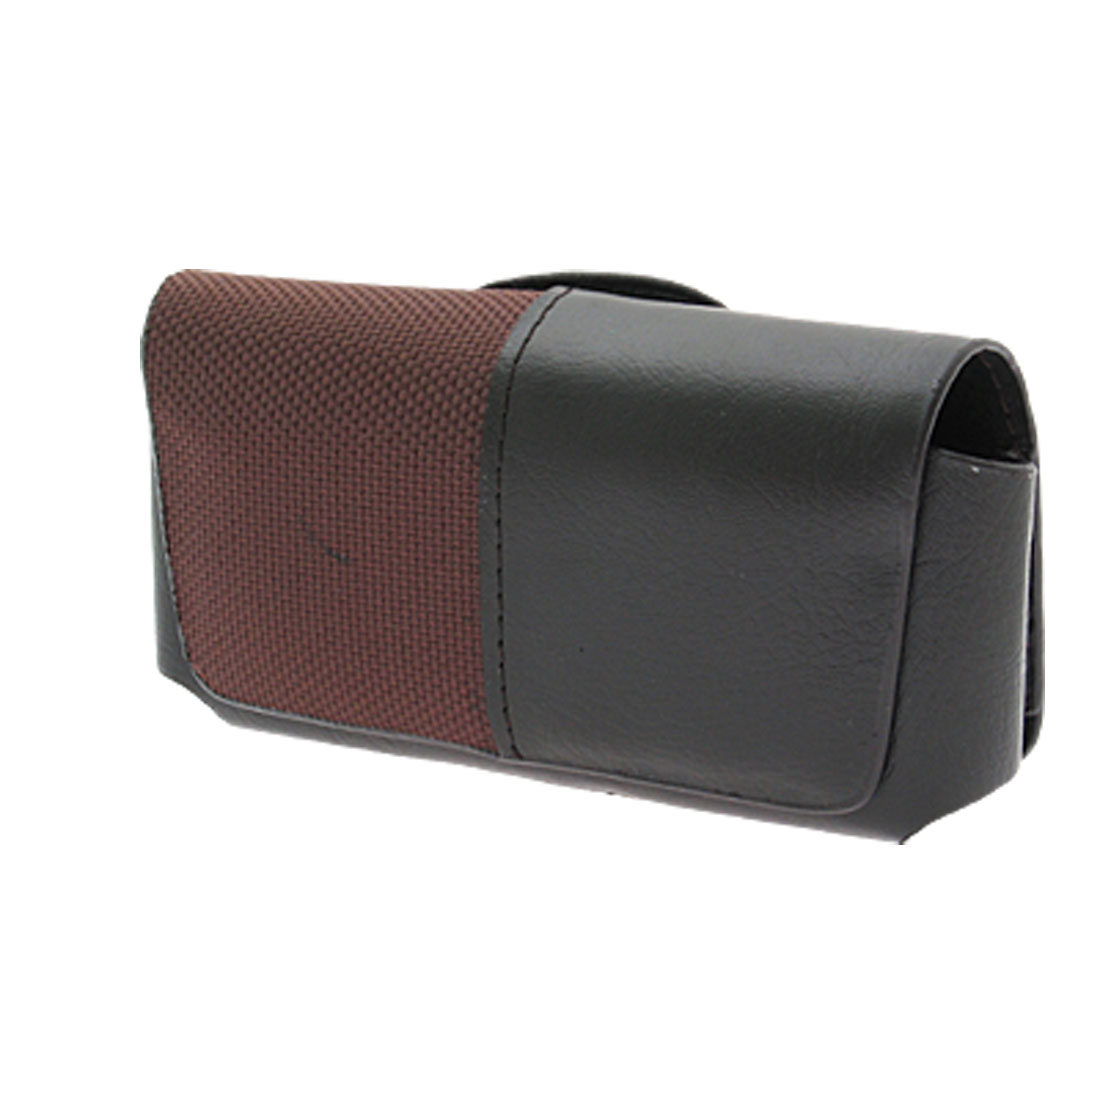 Black Faux Leather Casing Holder for Palm 650 700 PDA